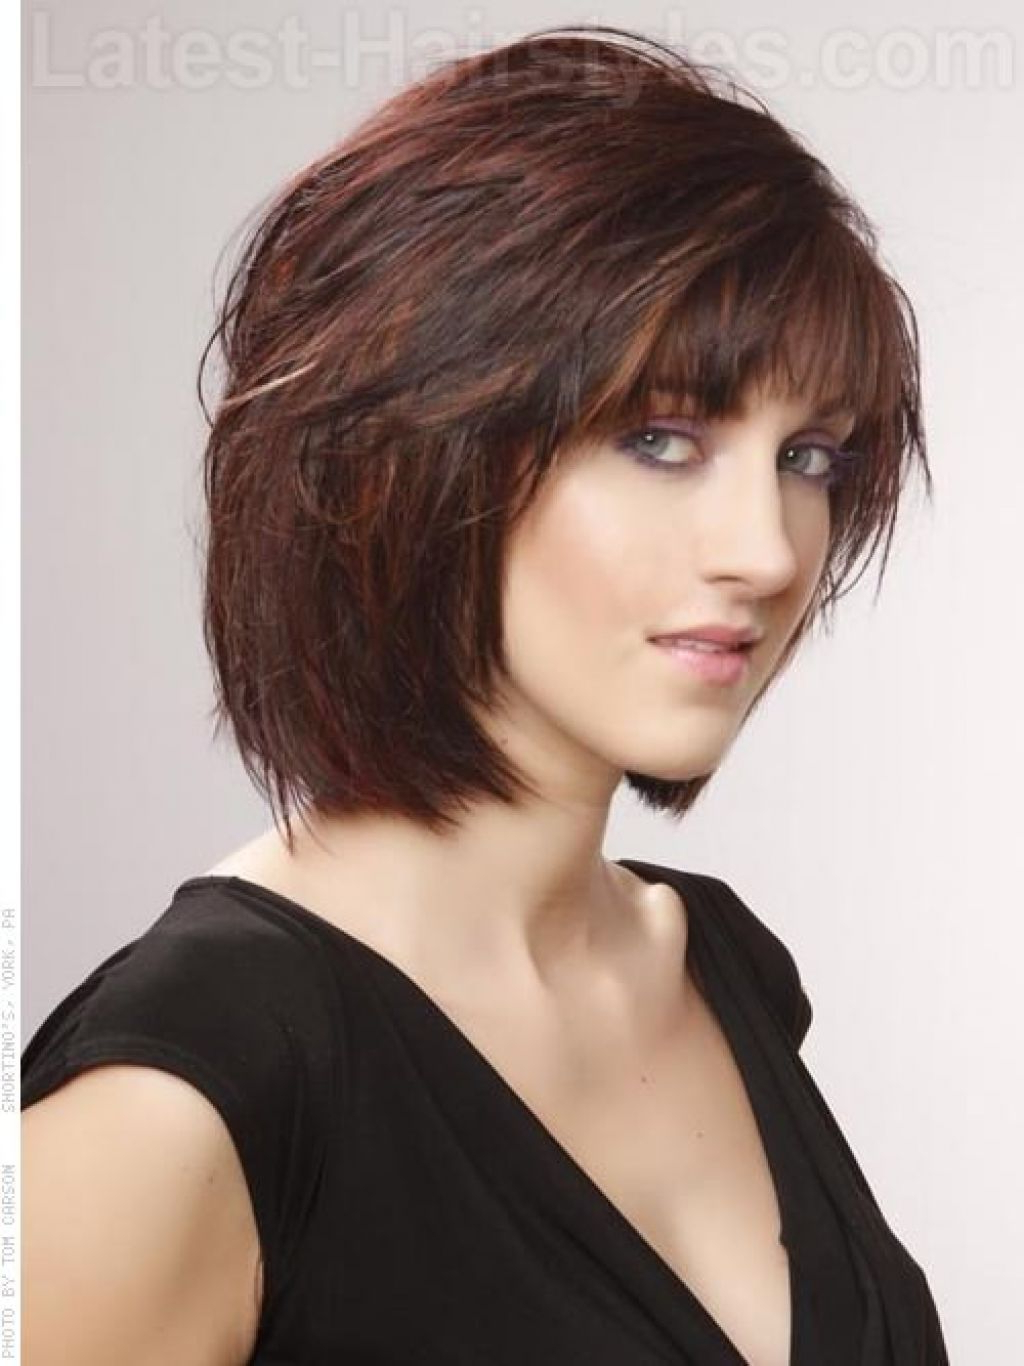 Well Liked Feathered Bangs Hairstyles With A Textured Bob In Pin On Hairstyles I Would Recommend (View 12 of 20)